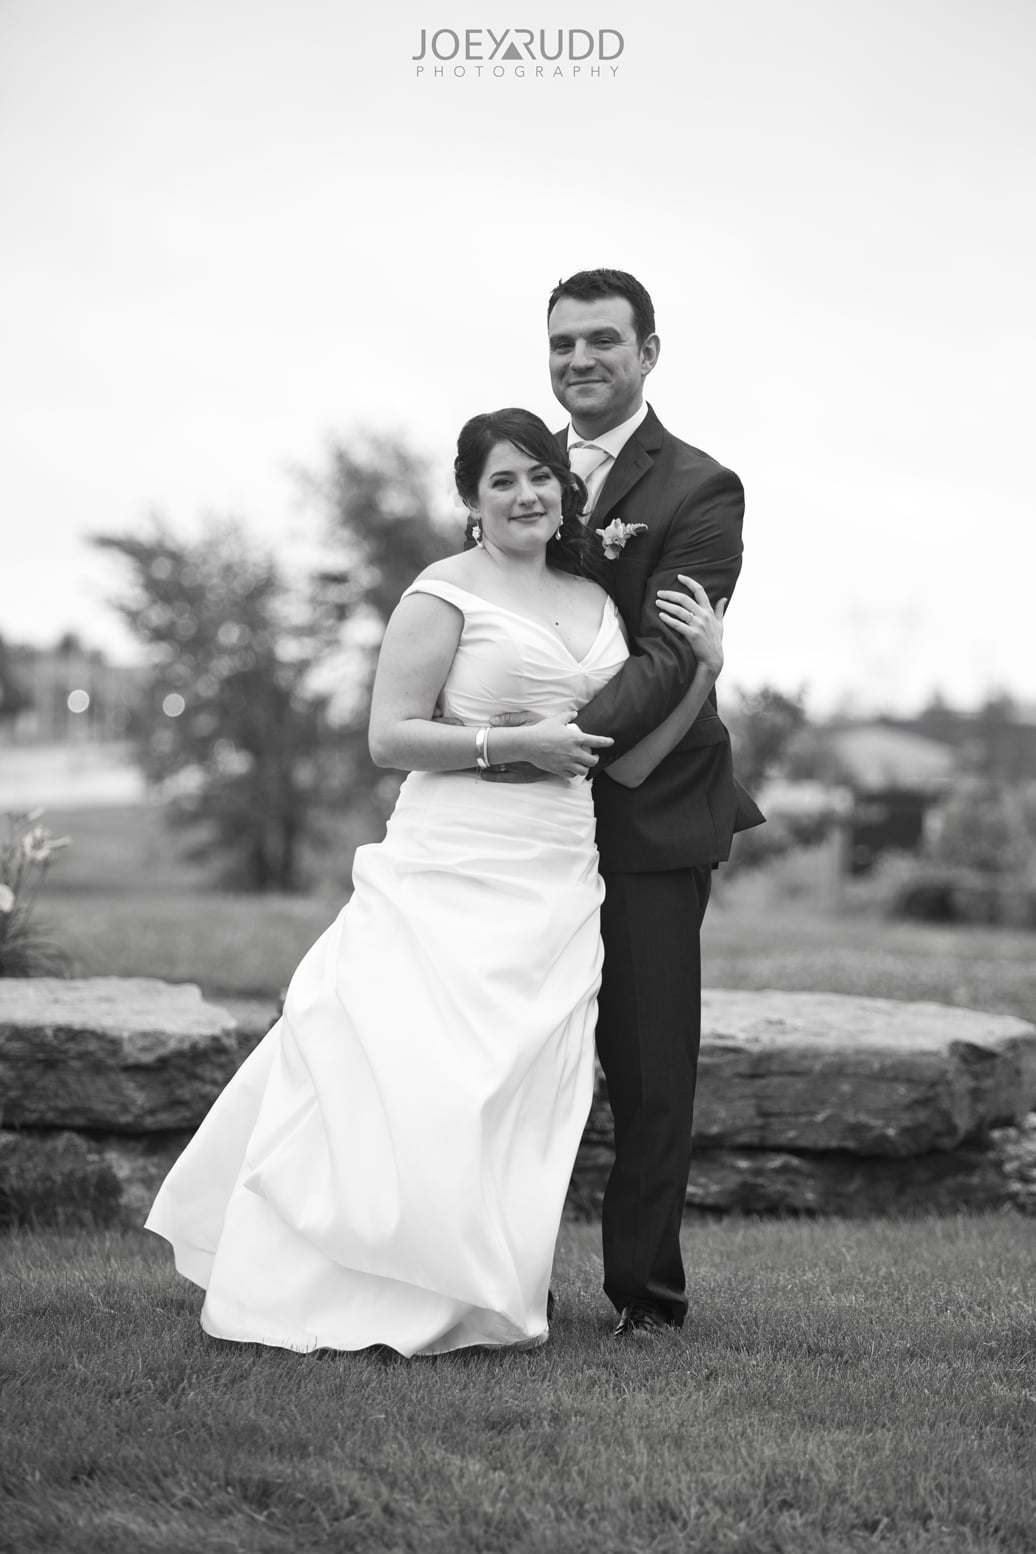 Ottawa Wedding Photographer Joey Rudd Photography